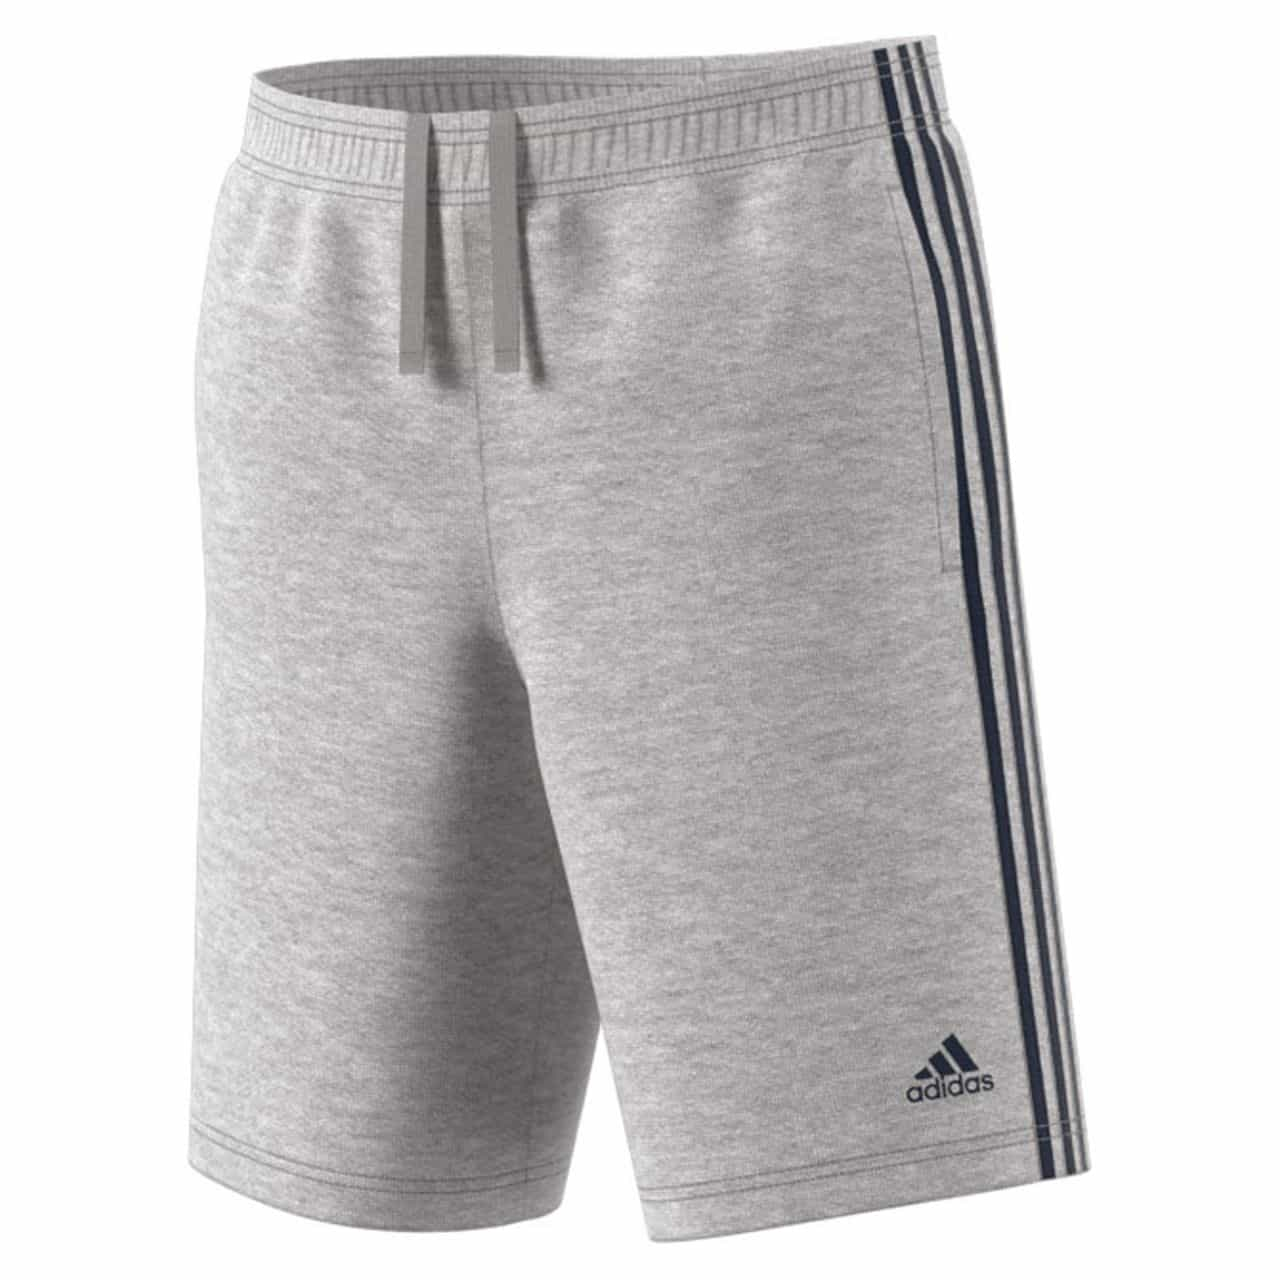 PANTALONI SCURTI ORIGINALI ADIDAS ESS 3S SHORT FT - BK7469